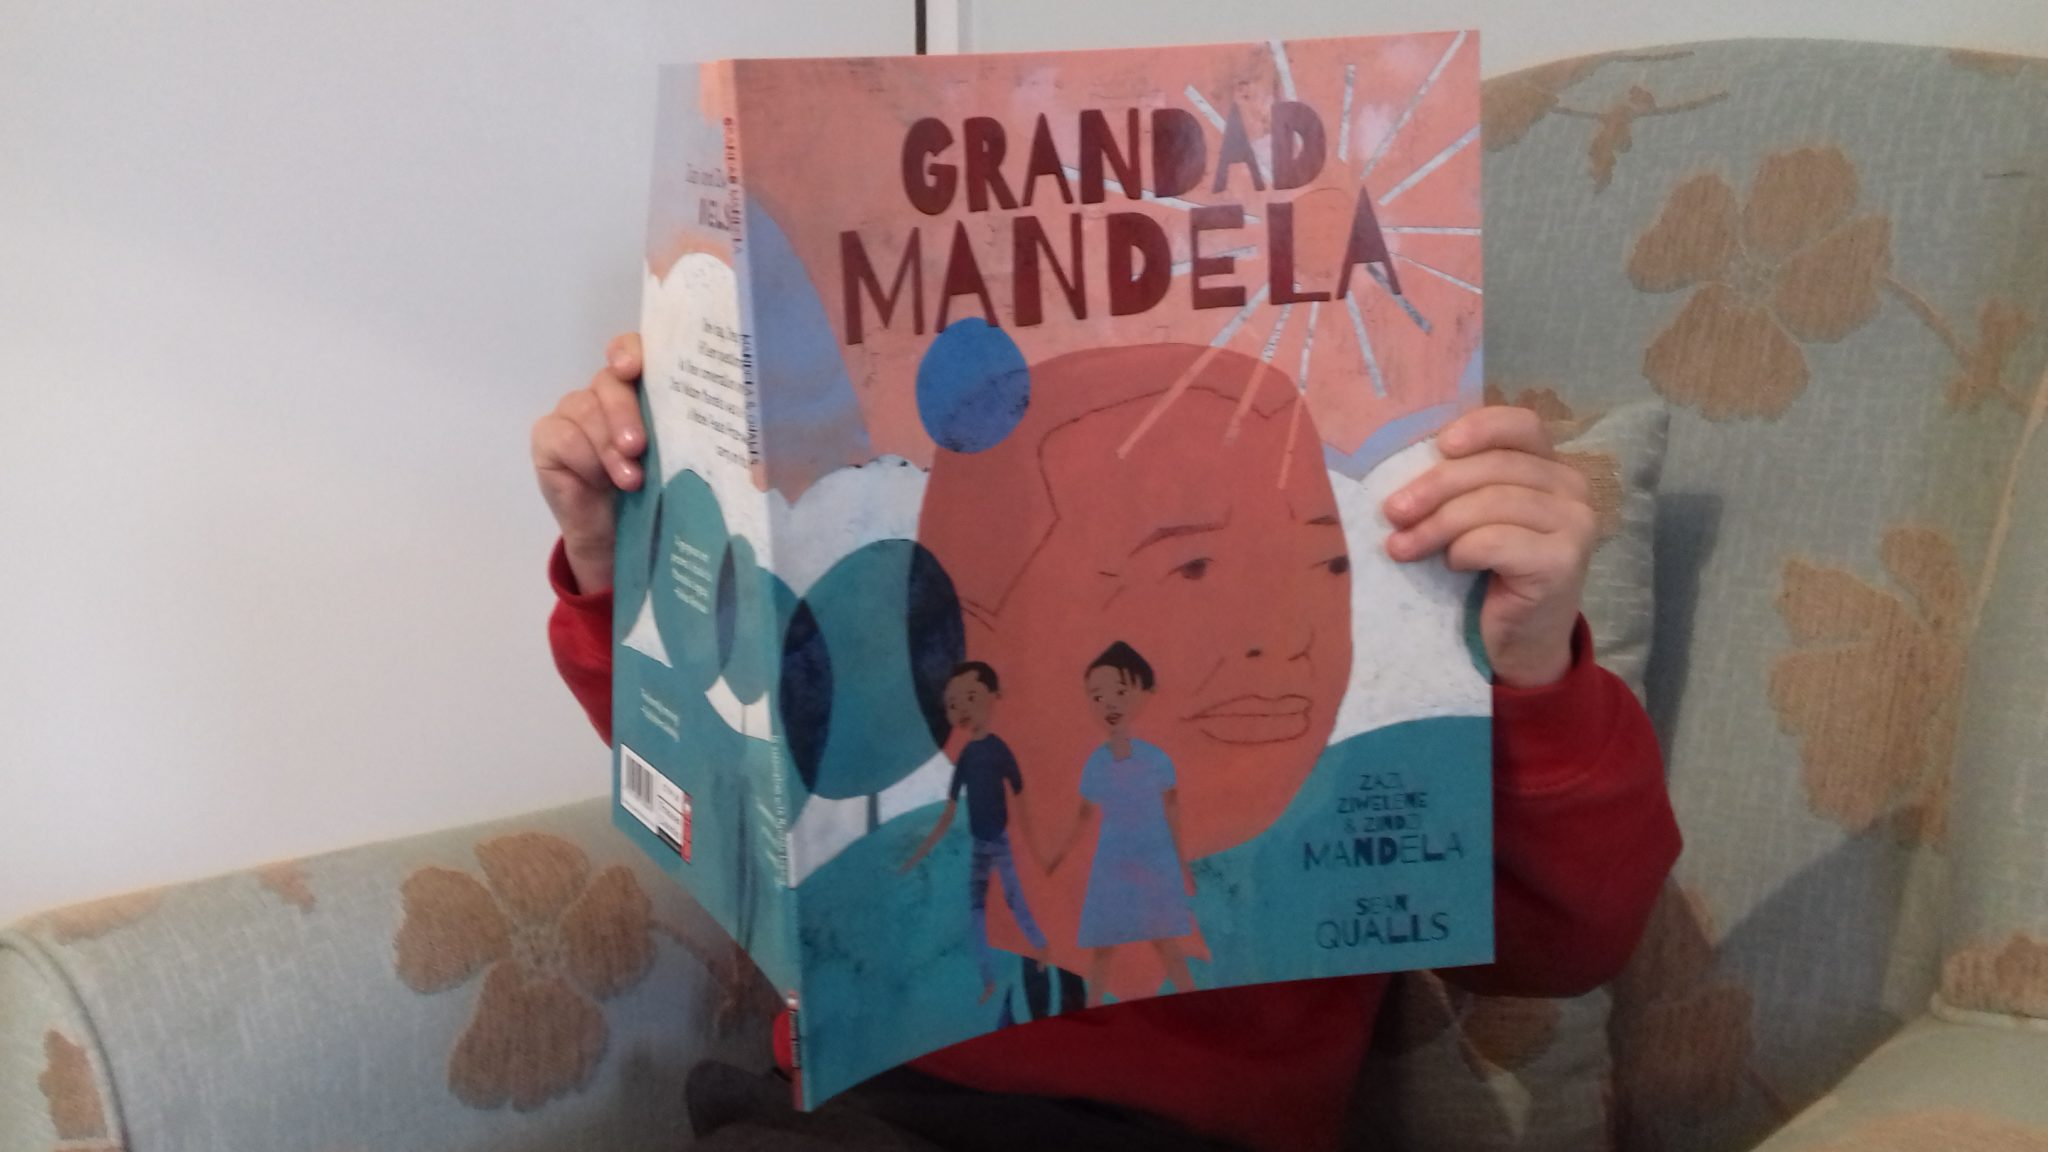 Grandad Mandela - Check out this list of 25+ cultural diversity books for children, all tried and tested by our own family.